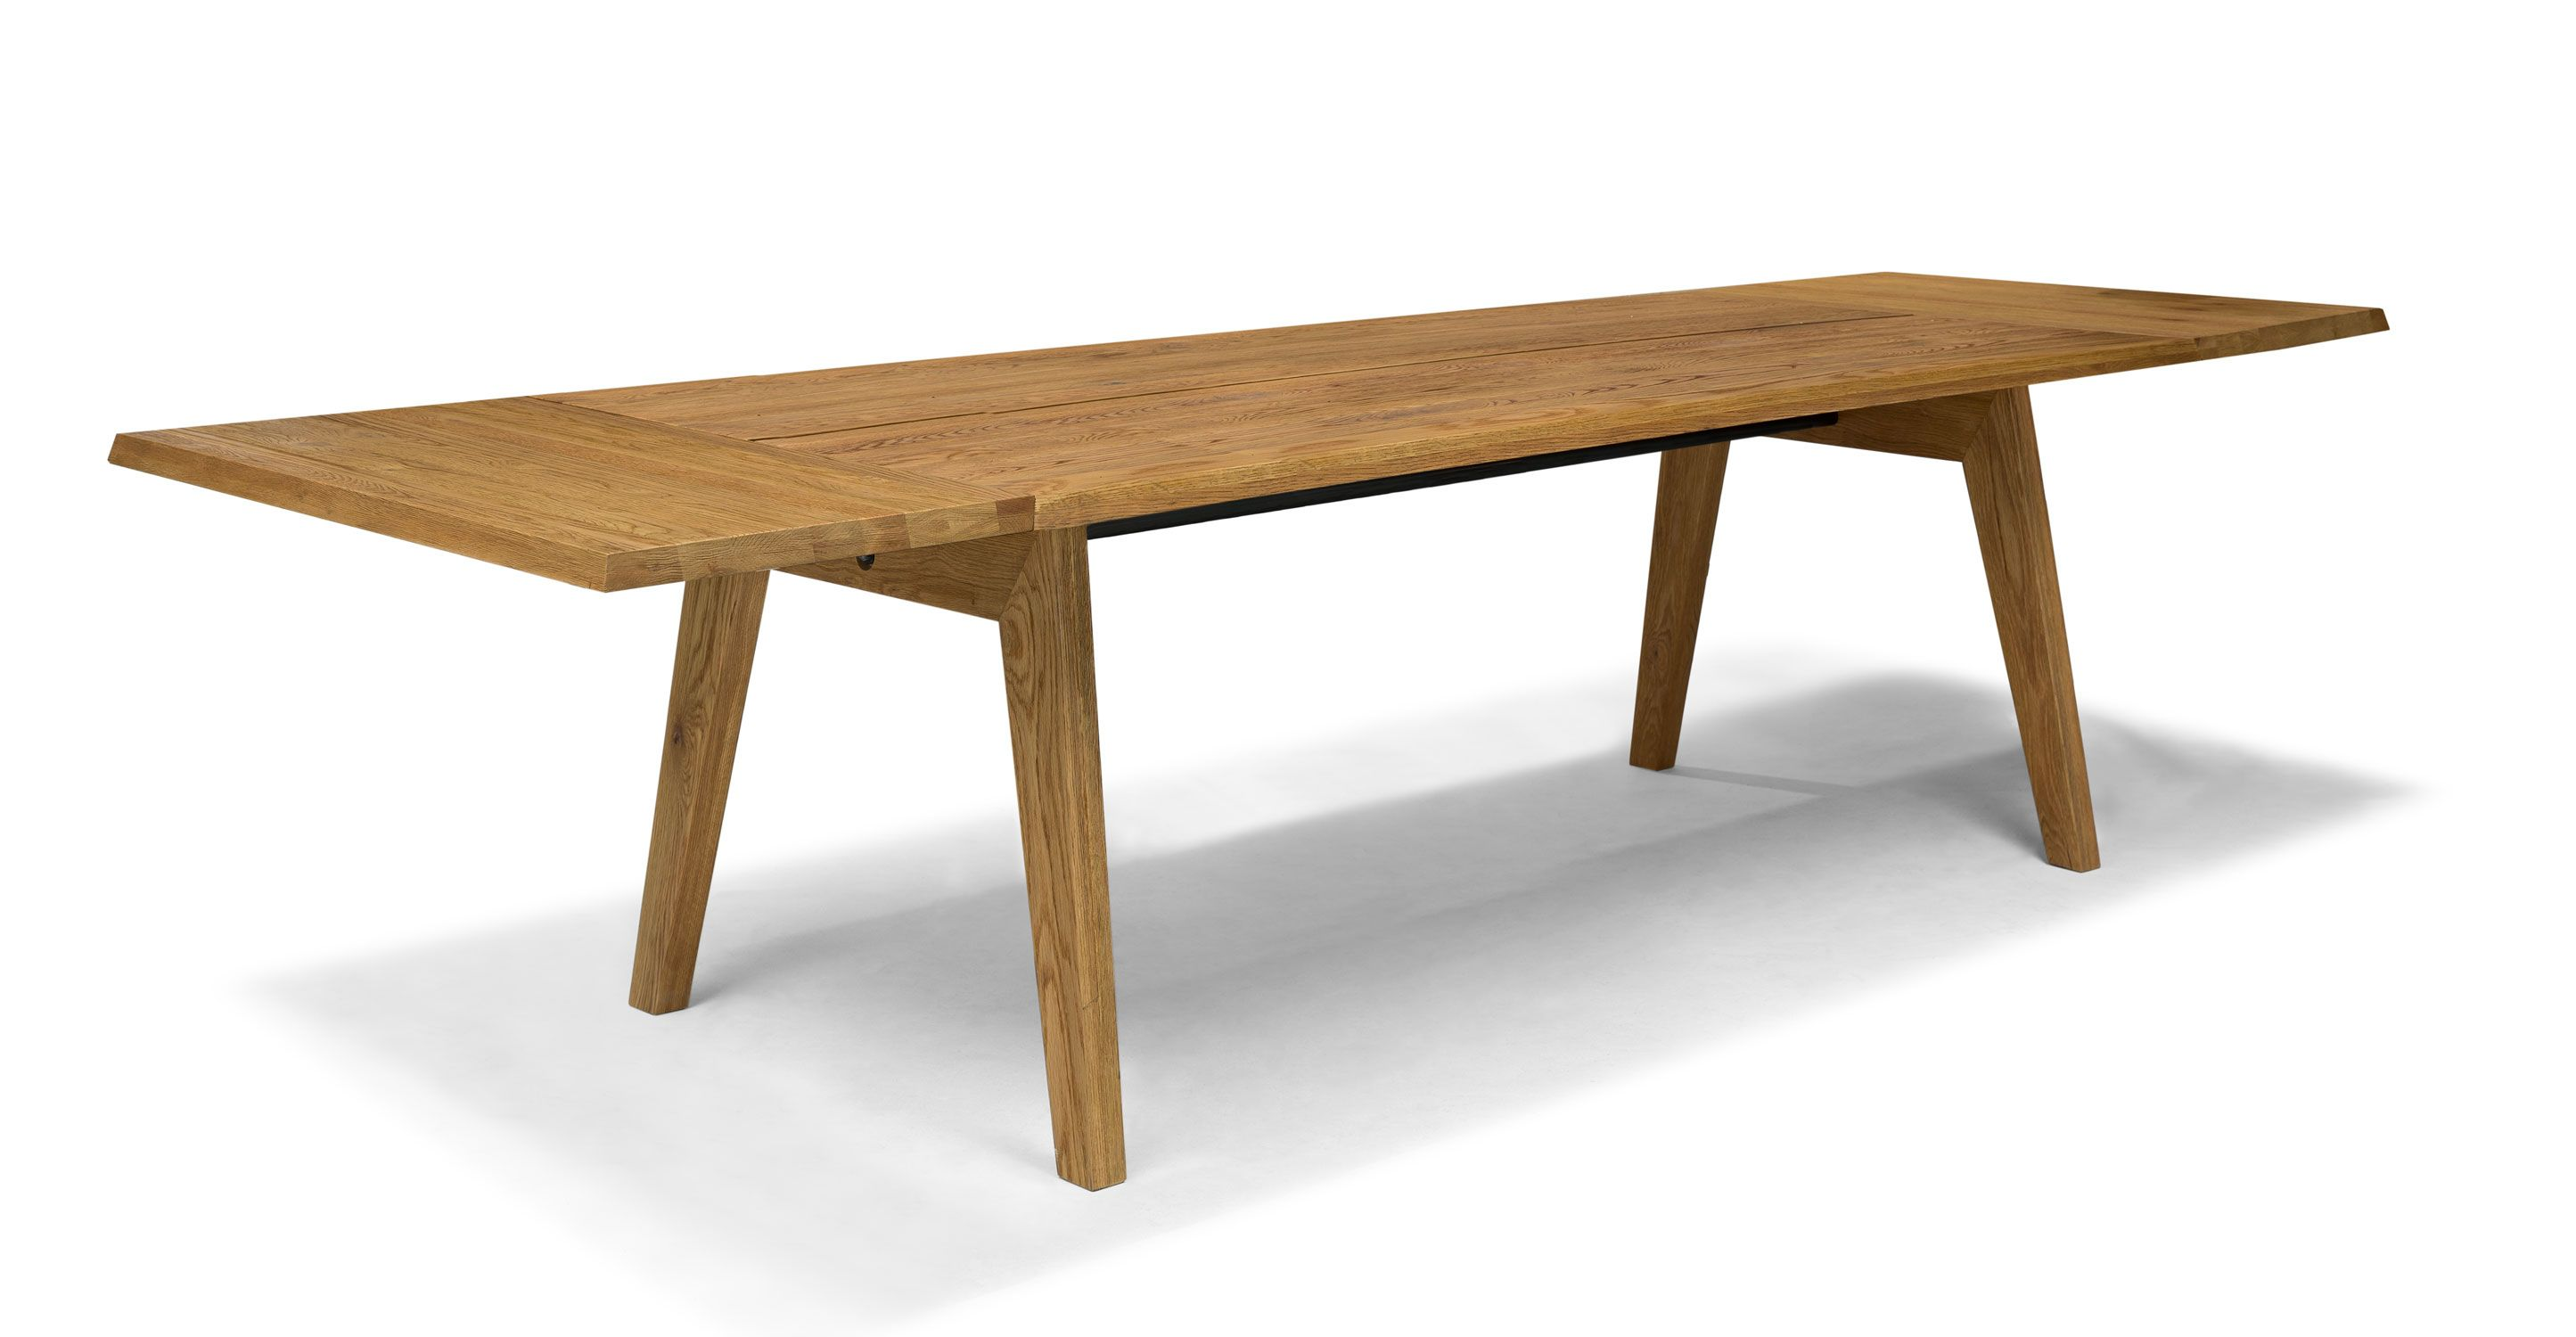 Modern Furniture Knockoffs extendable dining table for 12, solid wood | article madera modern